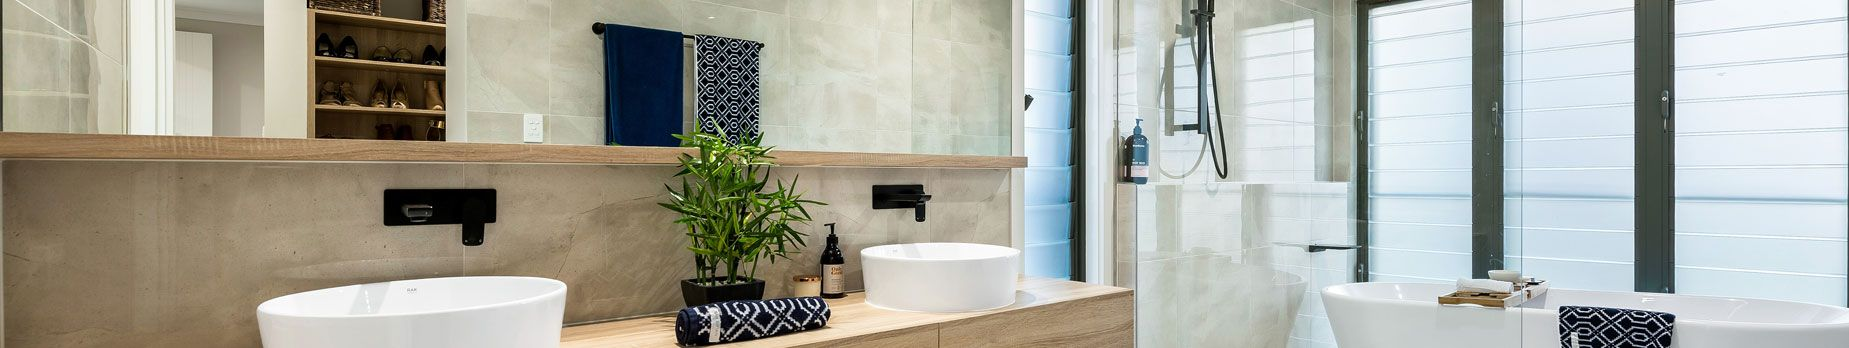 A modernised bathroom